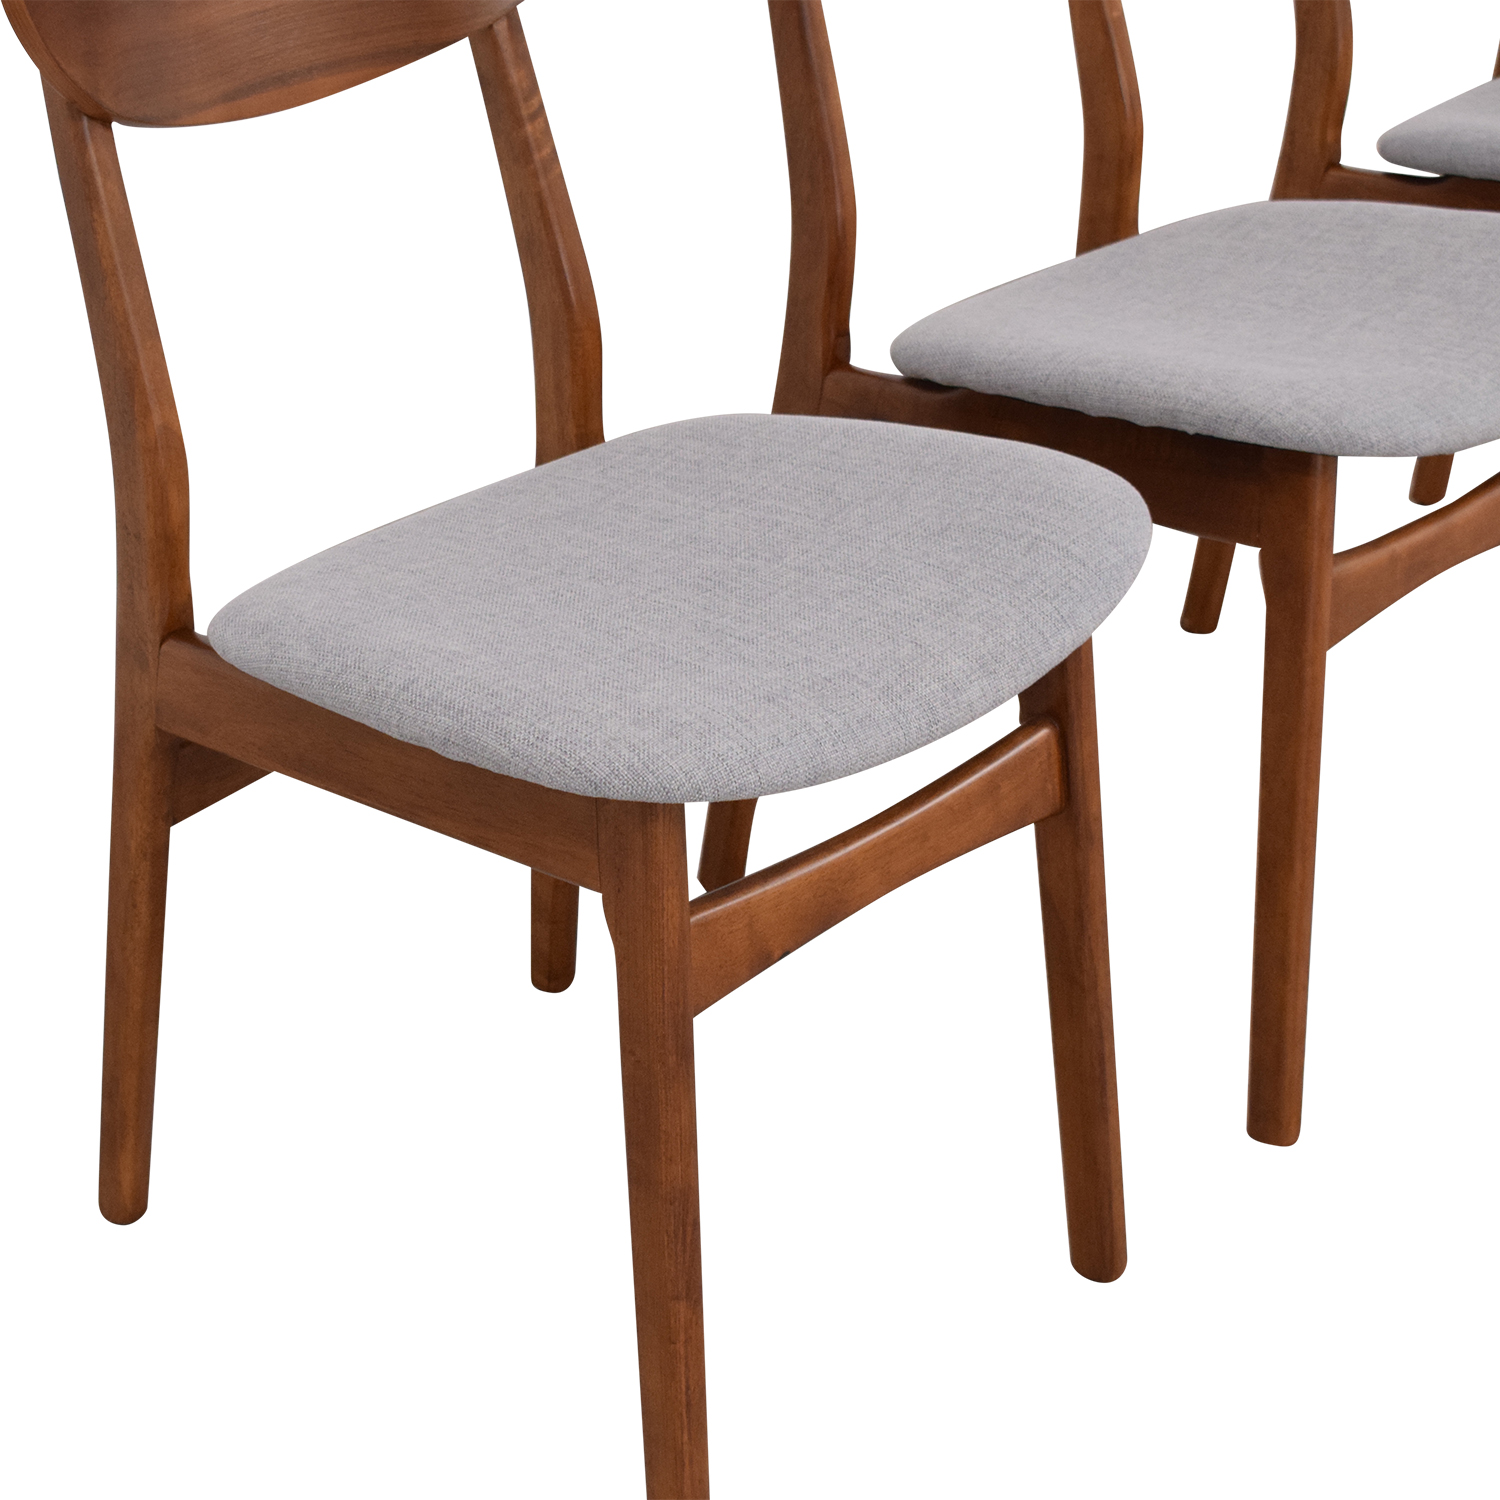 West Elm West Elm Classic Café Upholstered Dining Chairs